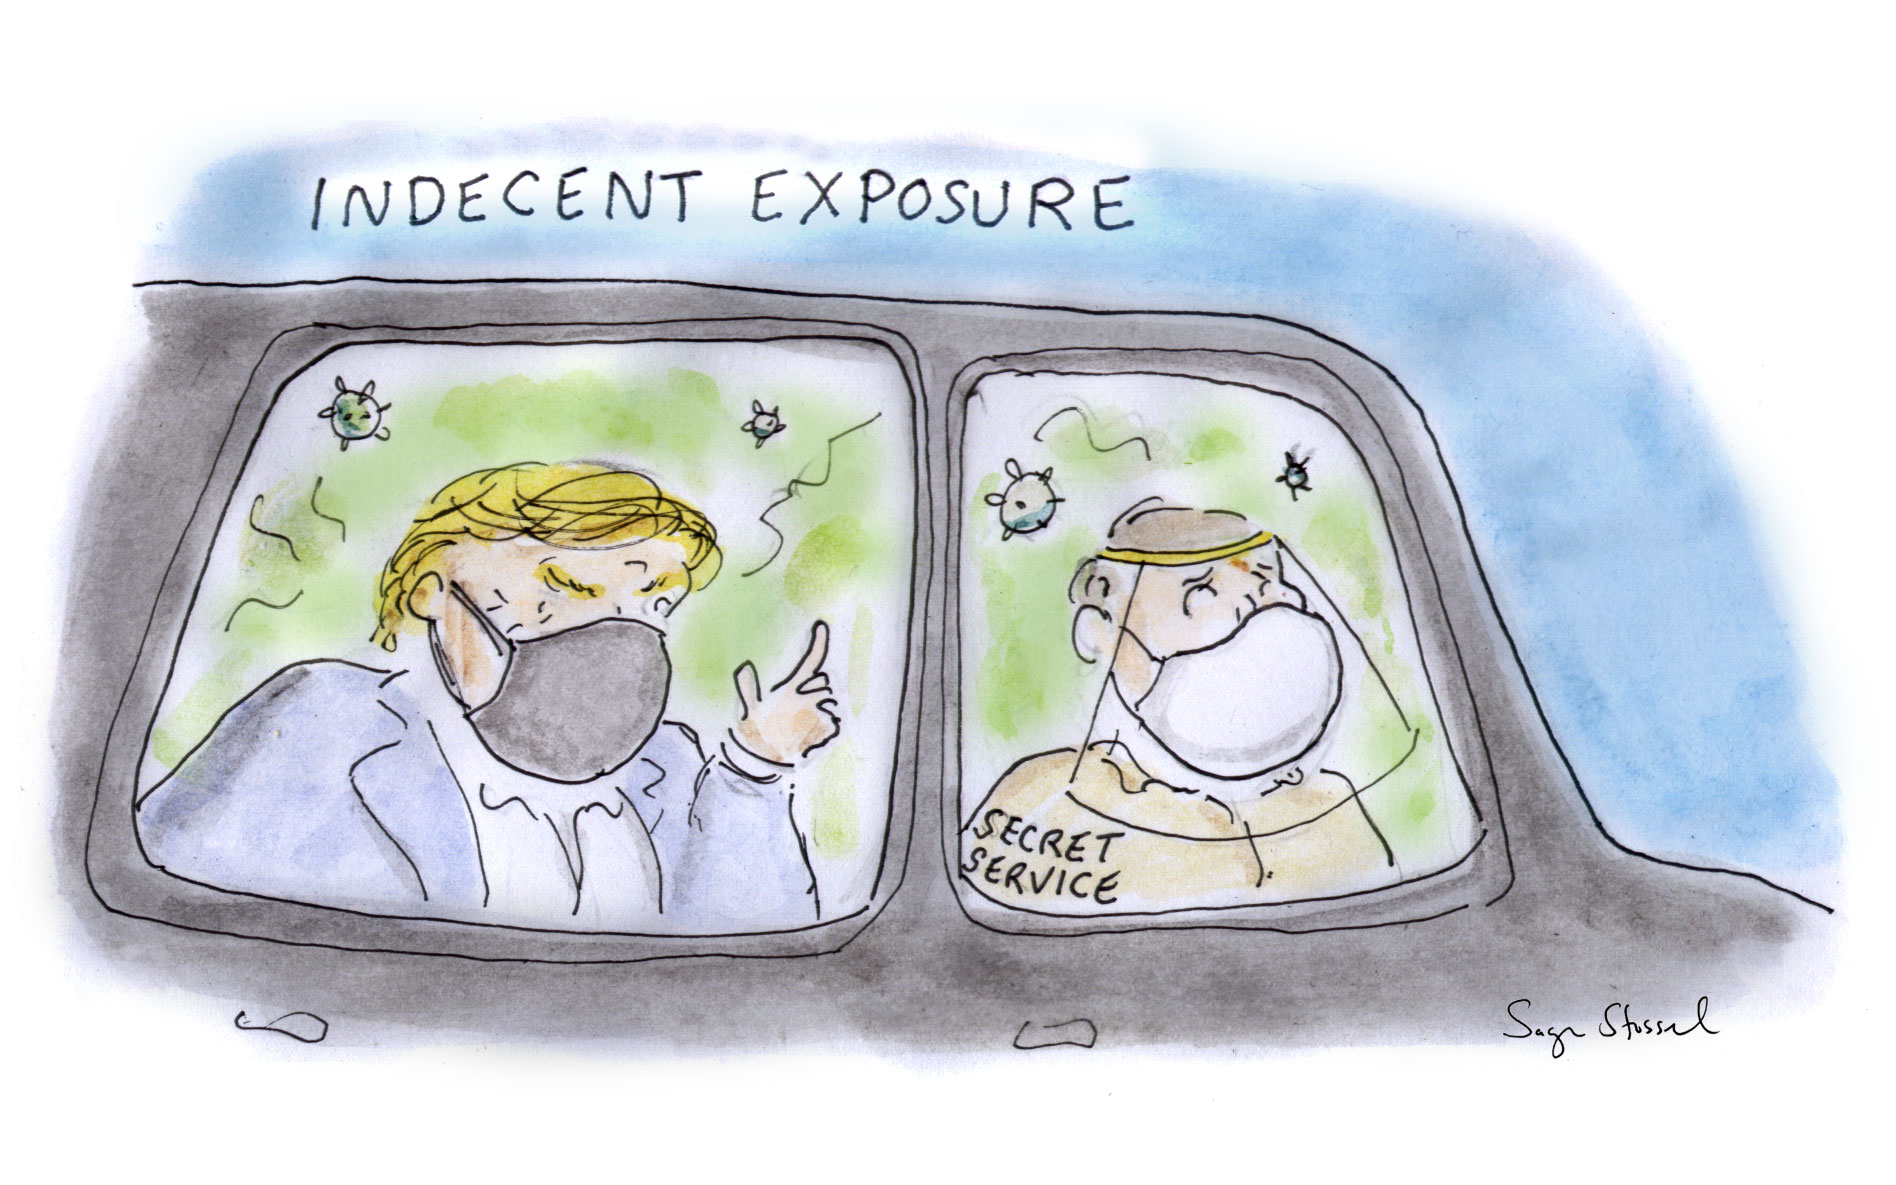 trump, coronavirus, walter reed, secret service, joy ride, exposure, assault, indecency, infectious, cartoon, sage stossel